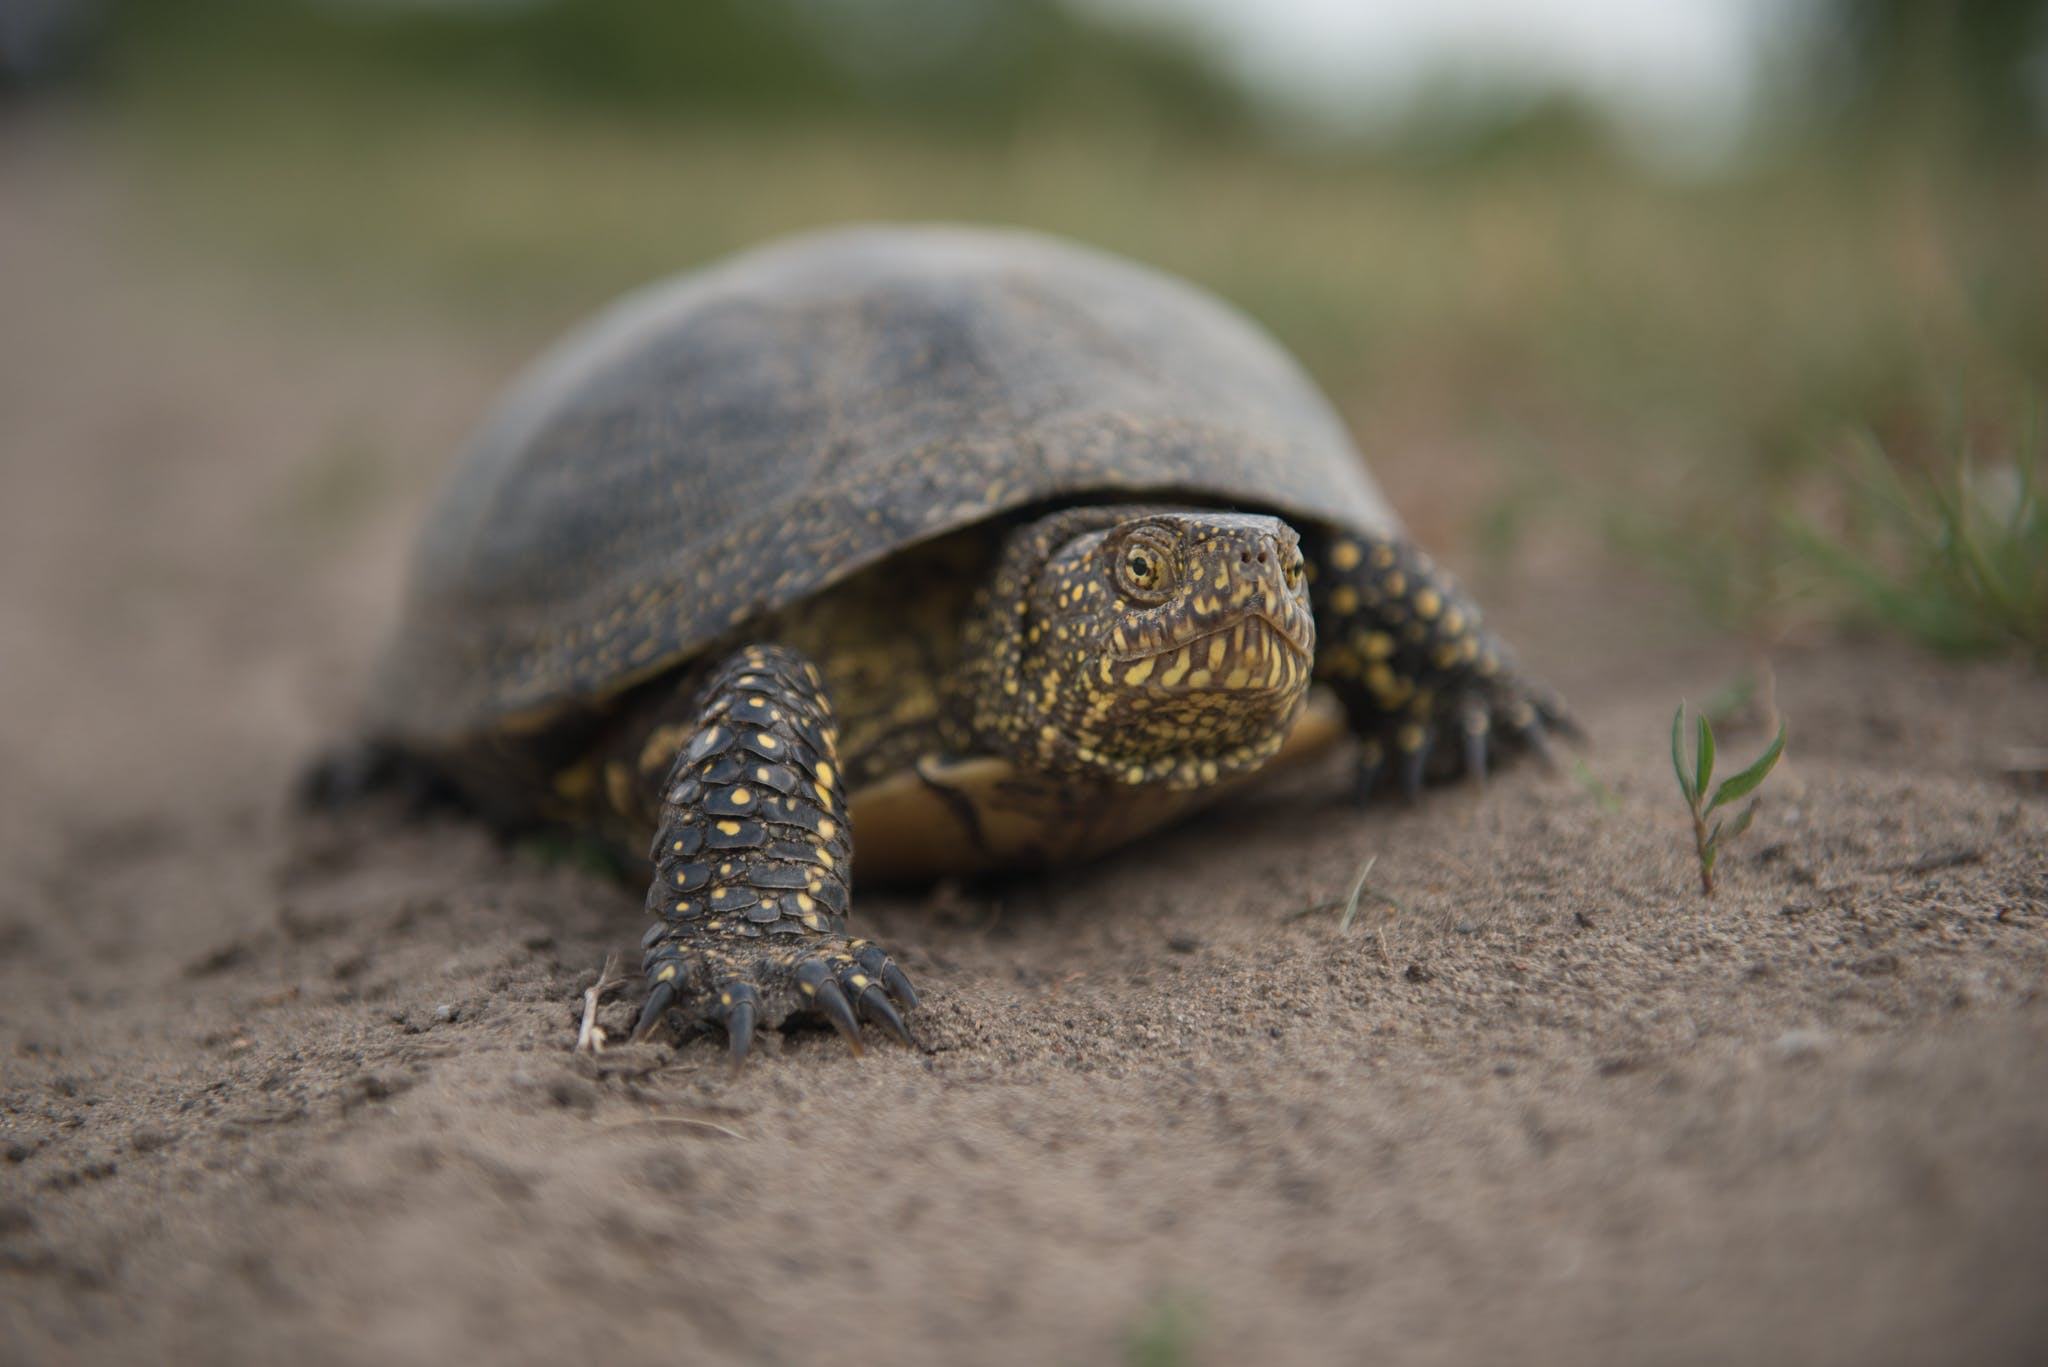 A European pond turtle walking over the sandy substrate of its wetland habitat in Slovakia.